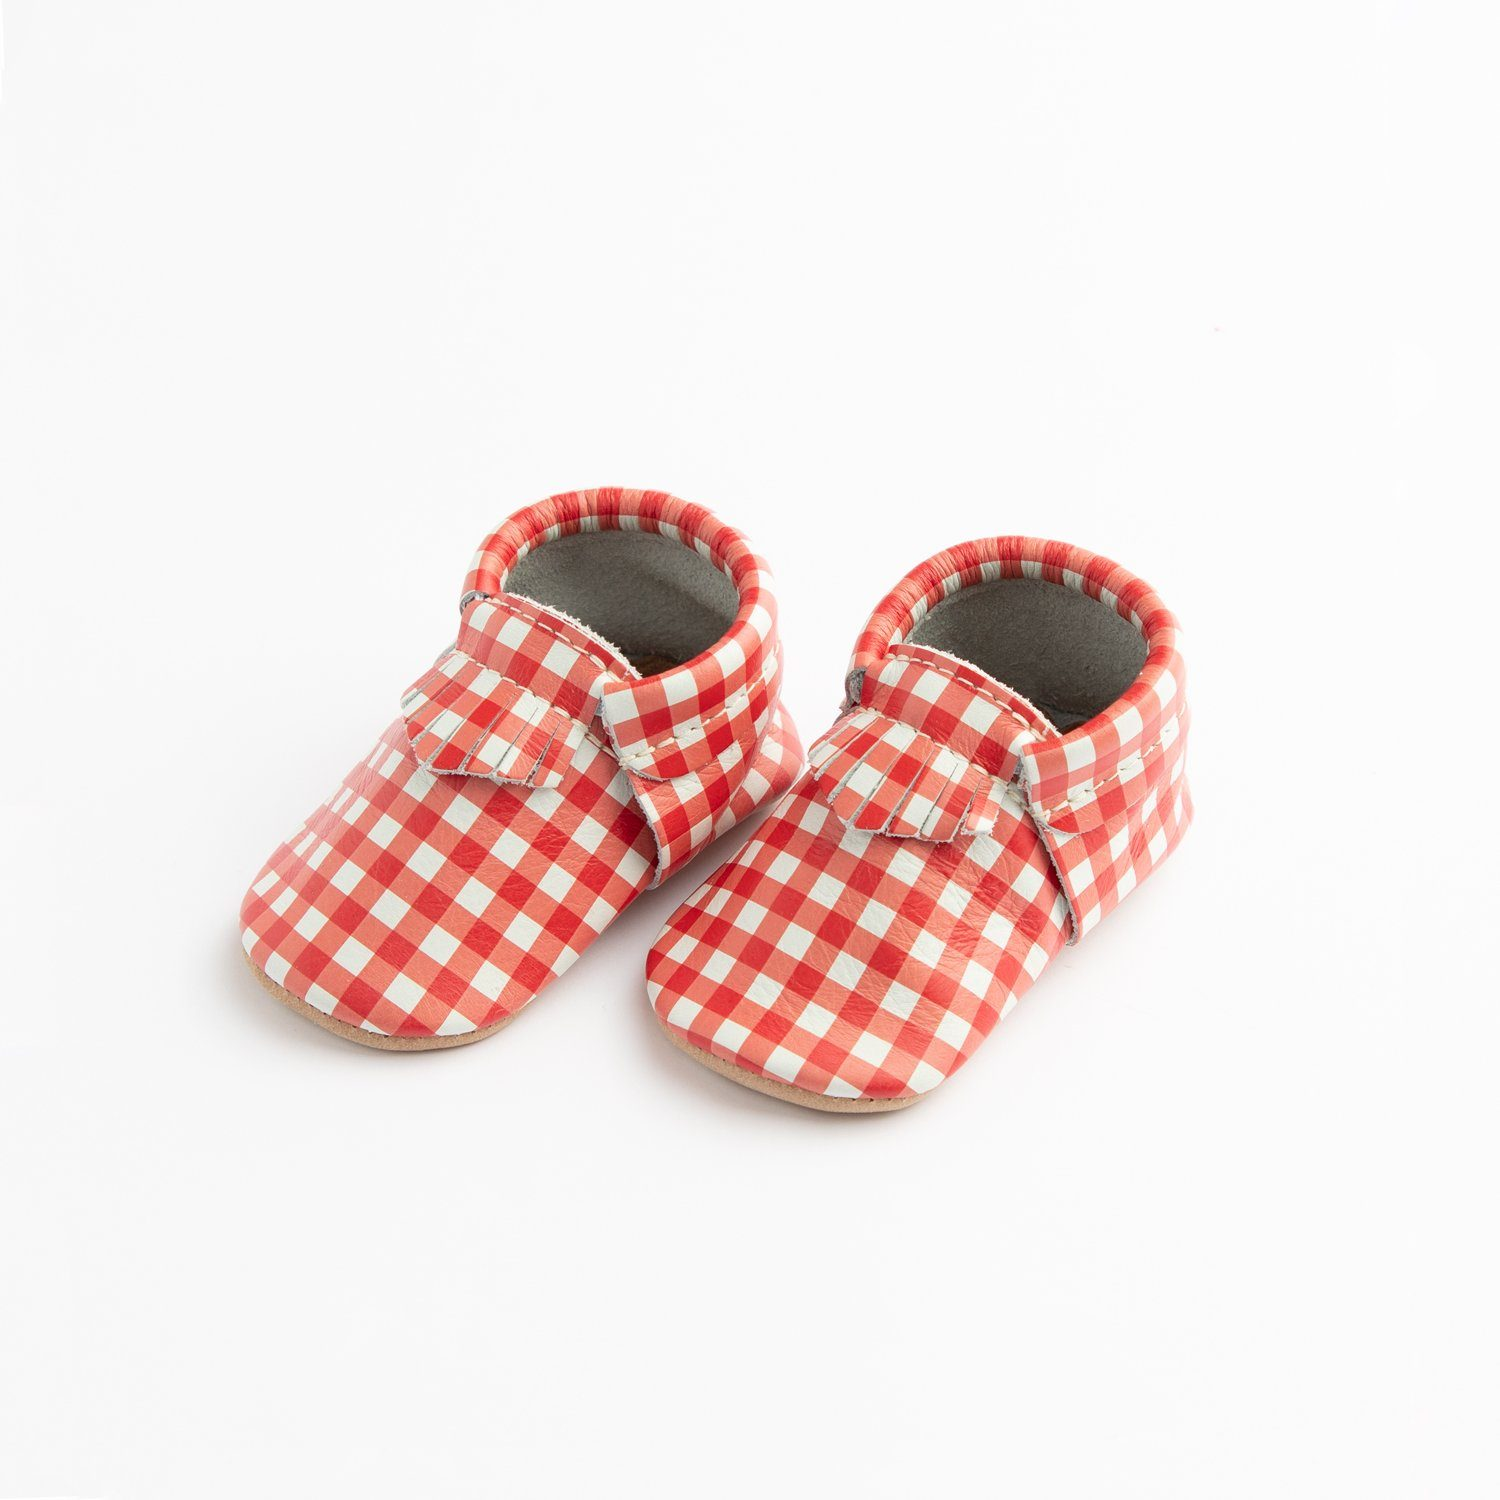 Red Gingham City Mocc City Moccs Soft Soles